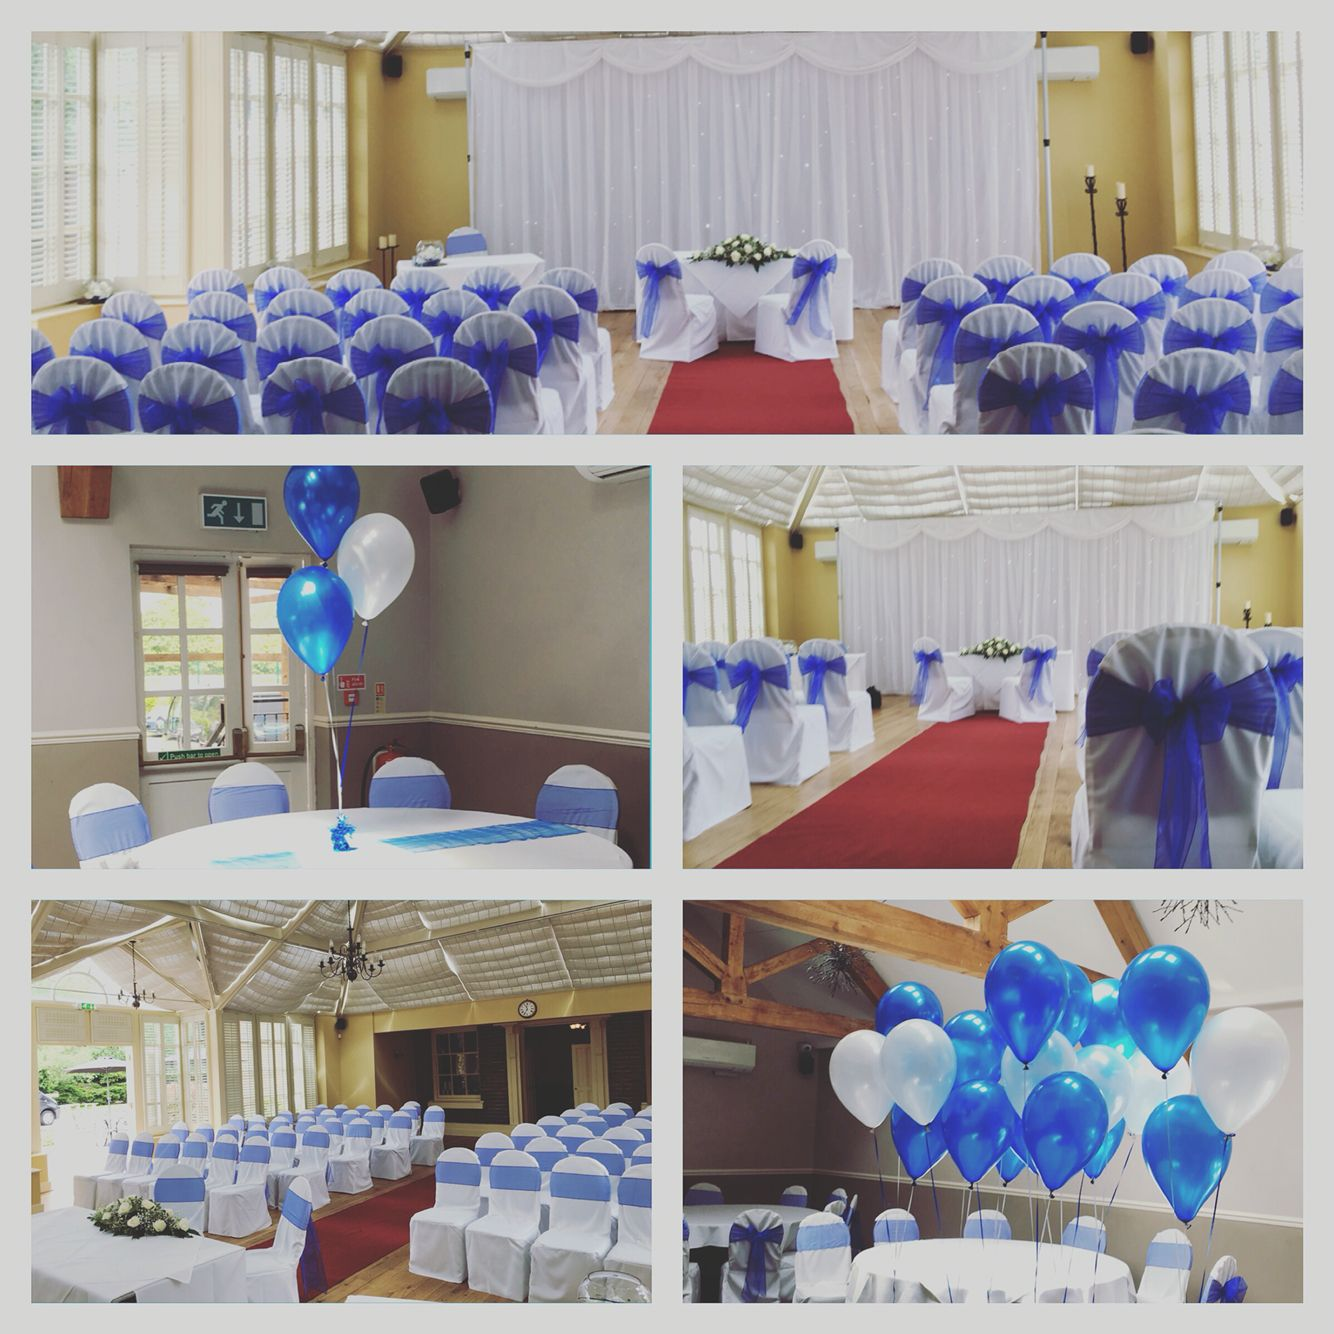 Chair Covers Telford Armchairs Accent Chairs Royal Blue Organza Sashes By Timeless Cover Hire At Hadley Park Hotel